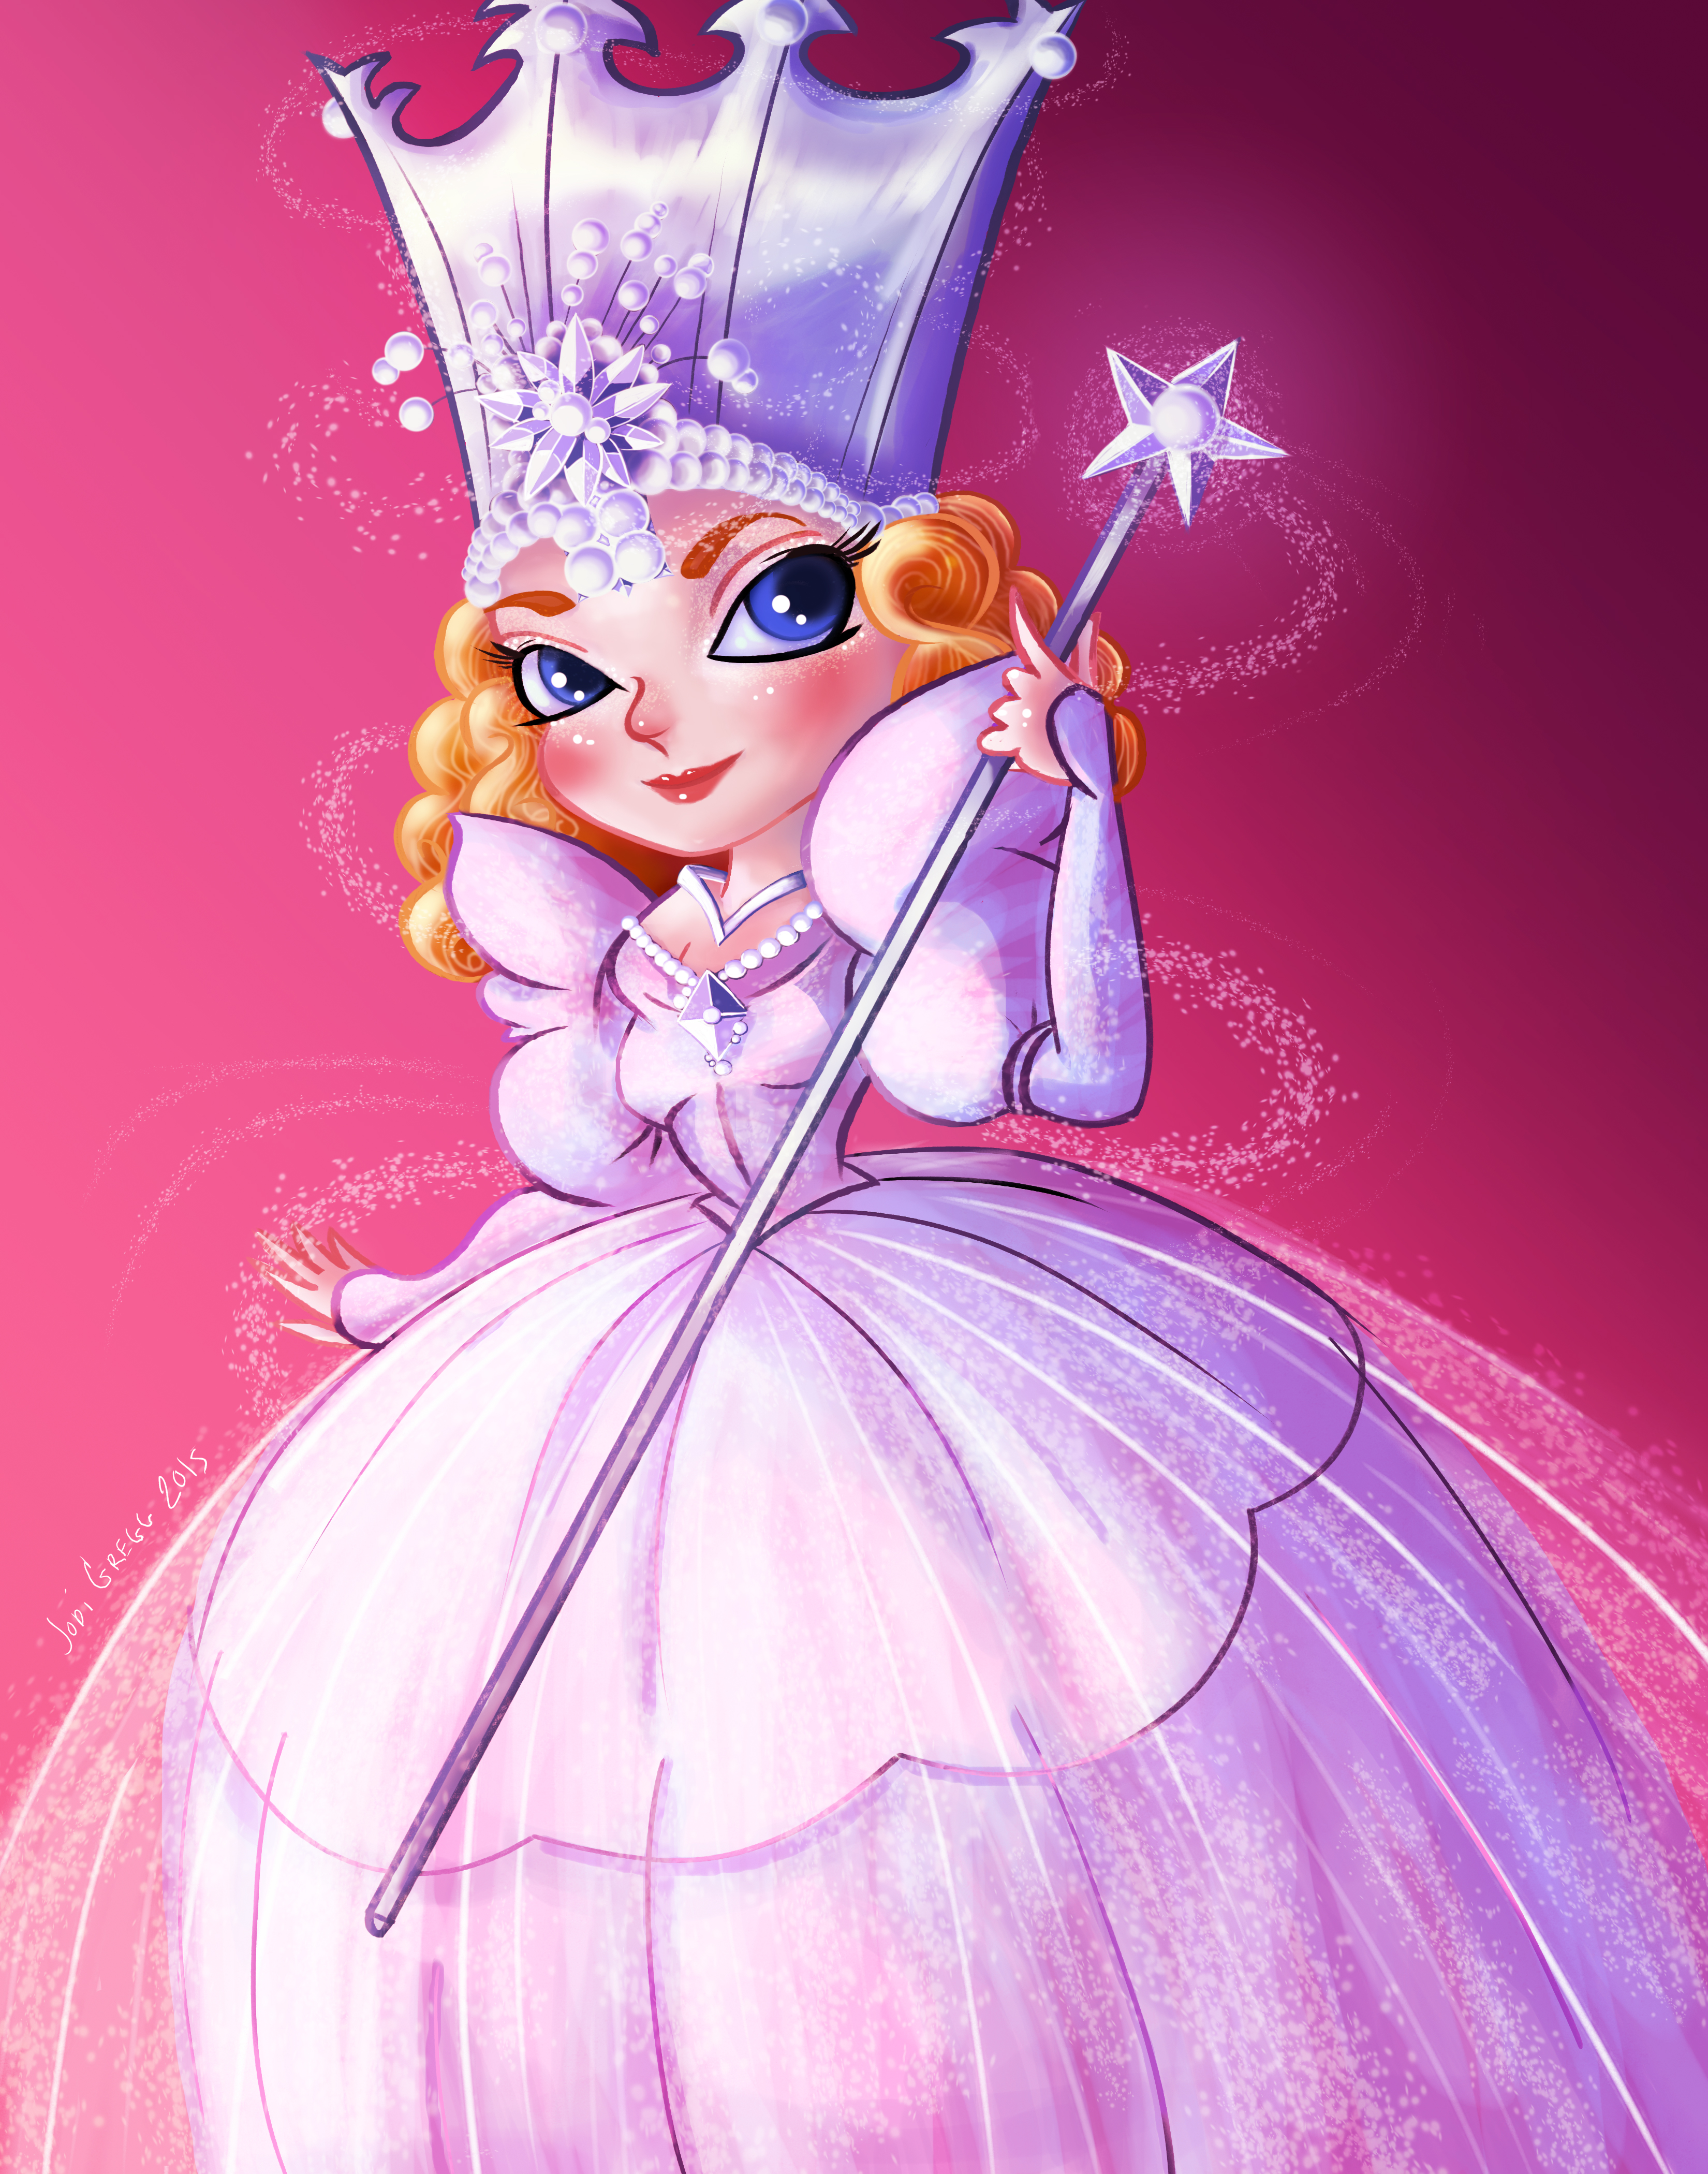 Glinda the Good Witch